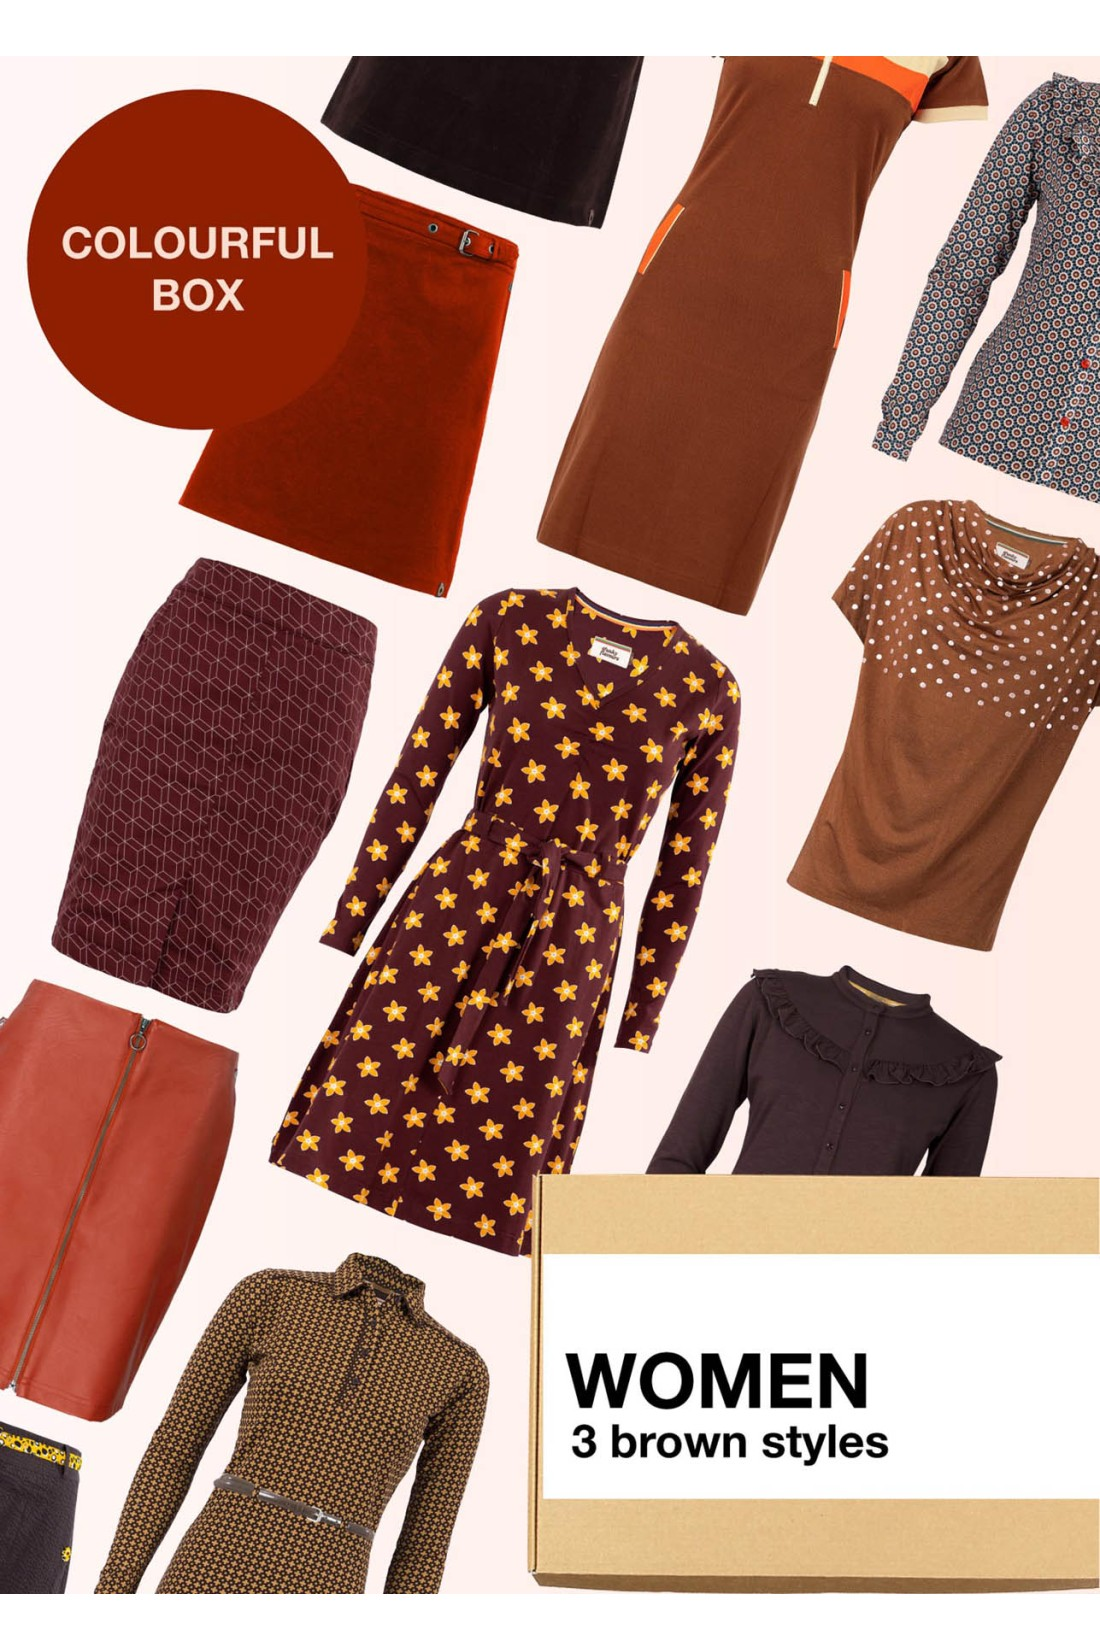 Surprise Box Women - Brown Box 3 Styles With Brown In It